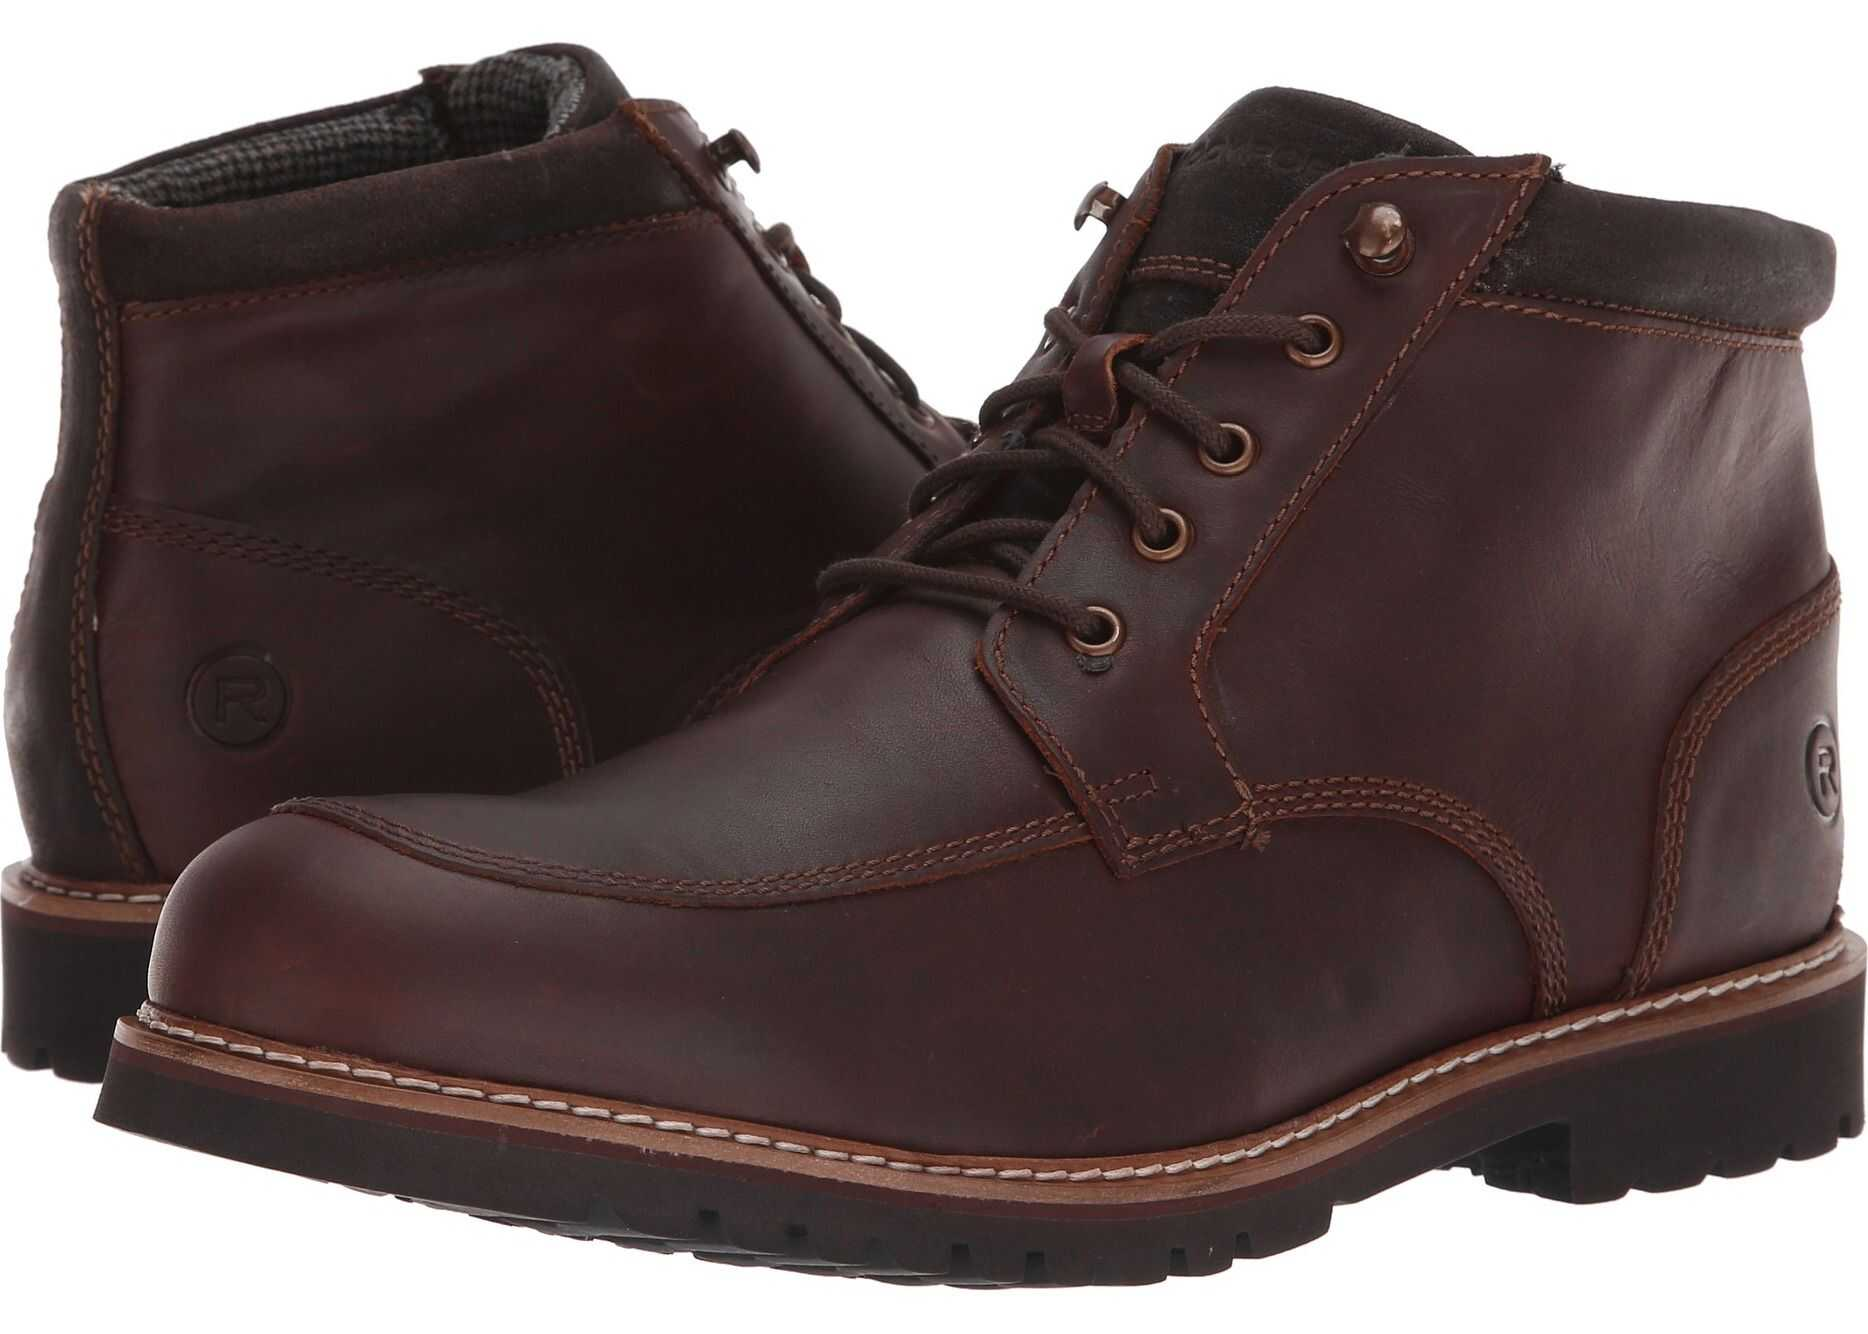 Rockport Marshall Rugged Moc Toe Saddle Brown